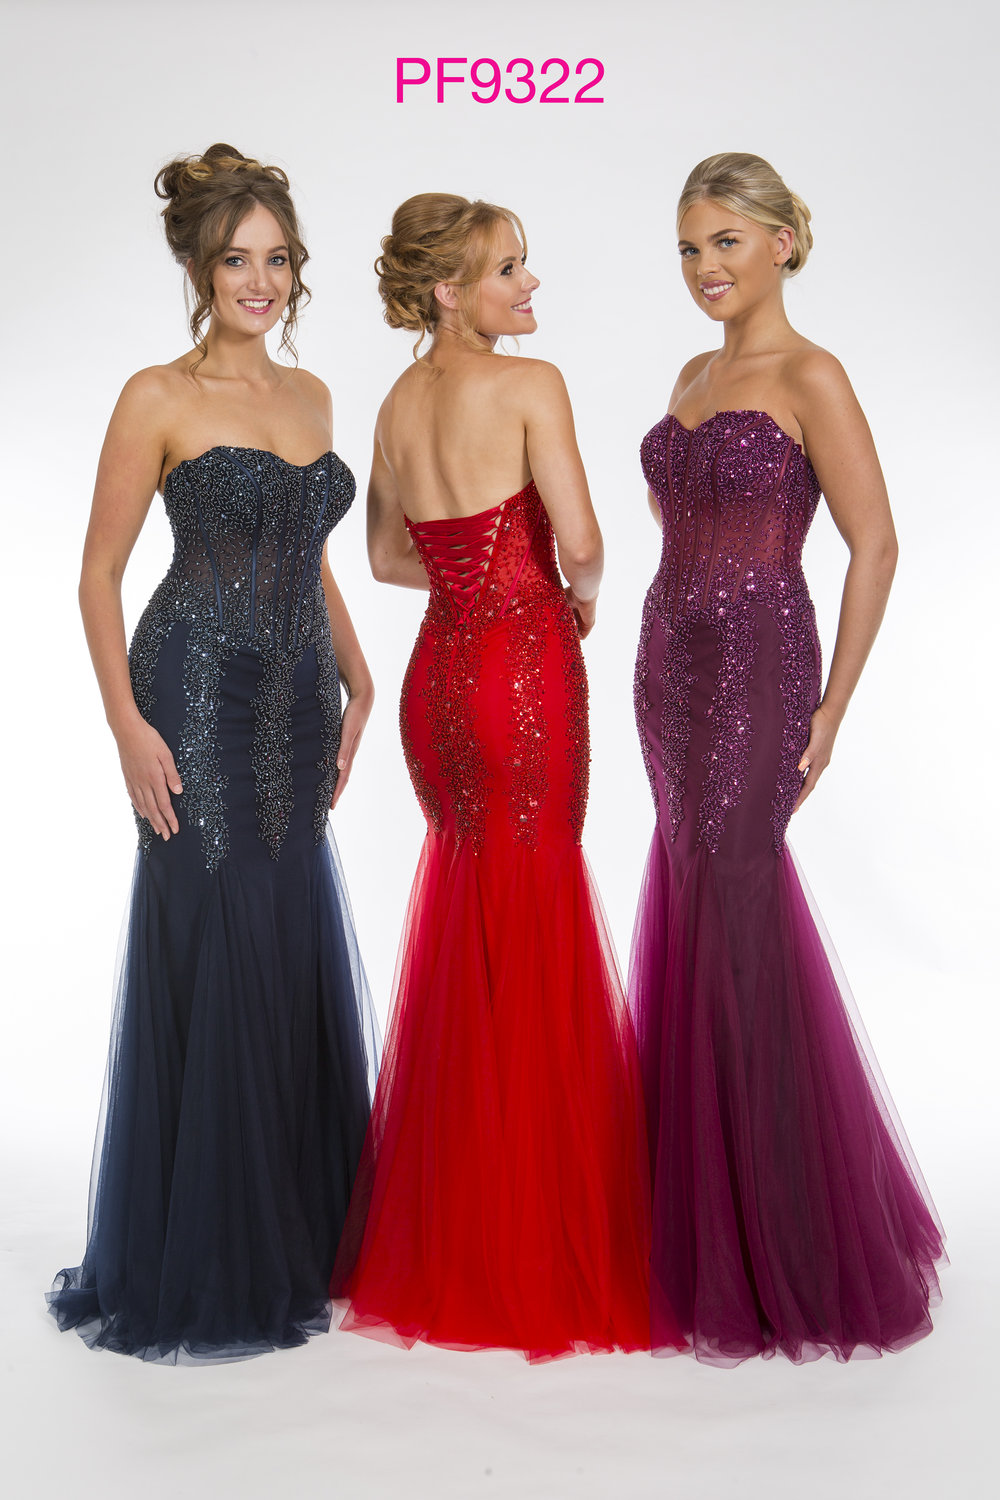 PF9322 Navy Red and Blackcurrant 2.jpg